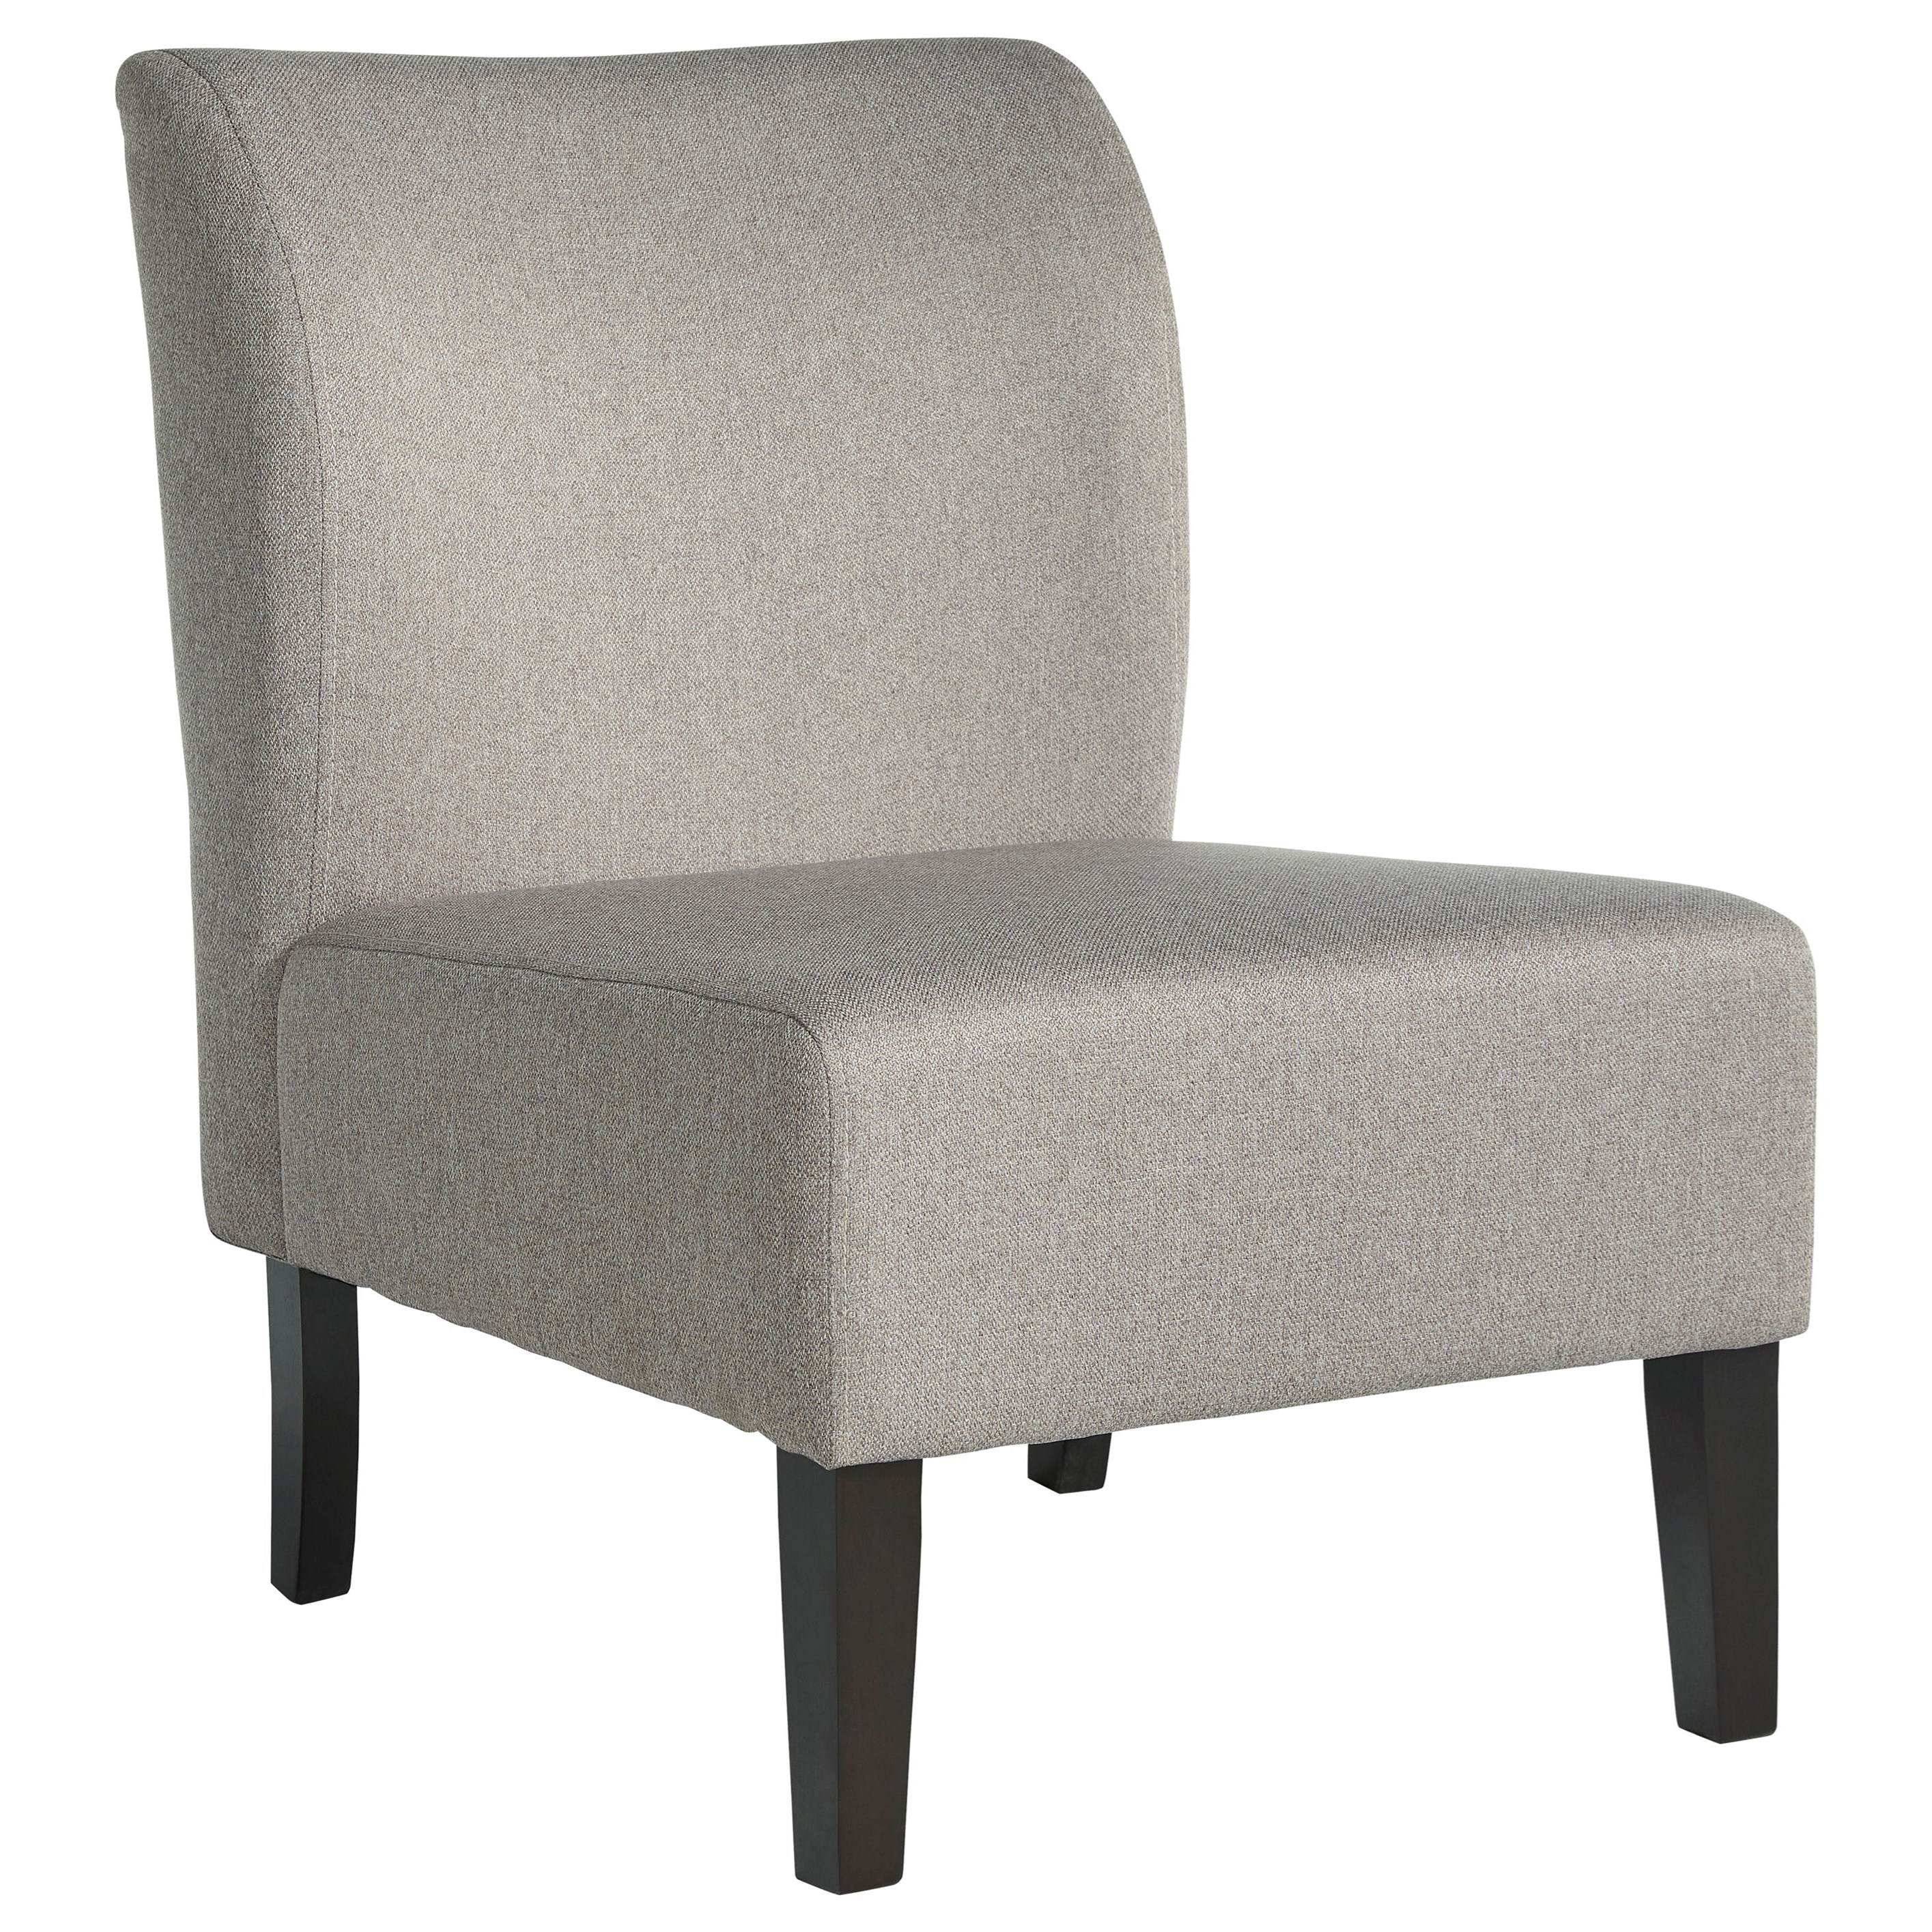 Triptis Accent Chair by Ashley Signature Design at Rooms and Rest